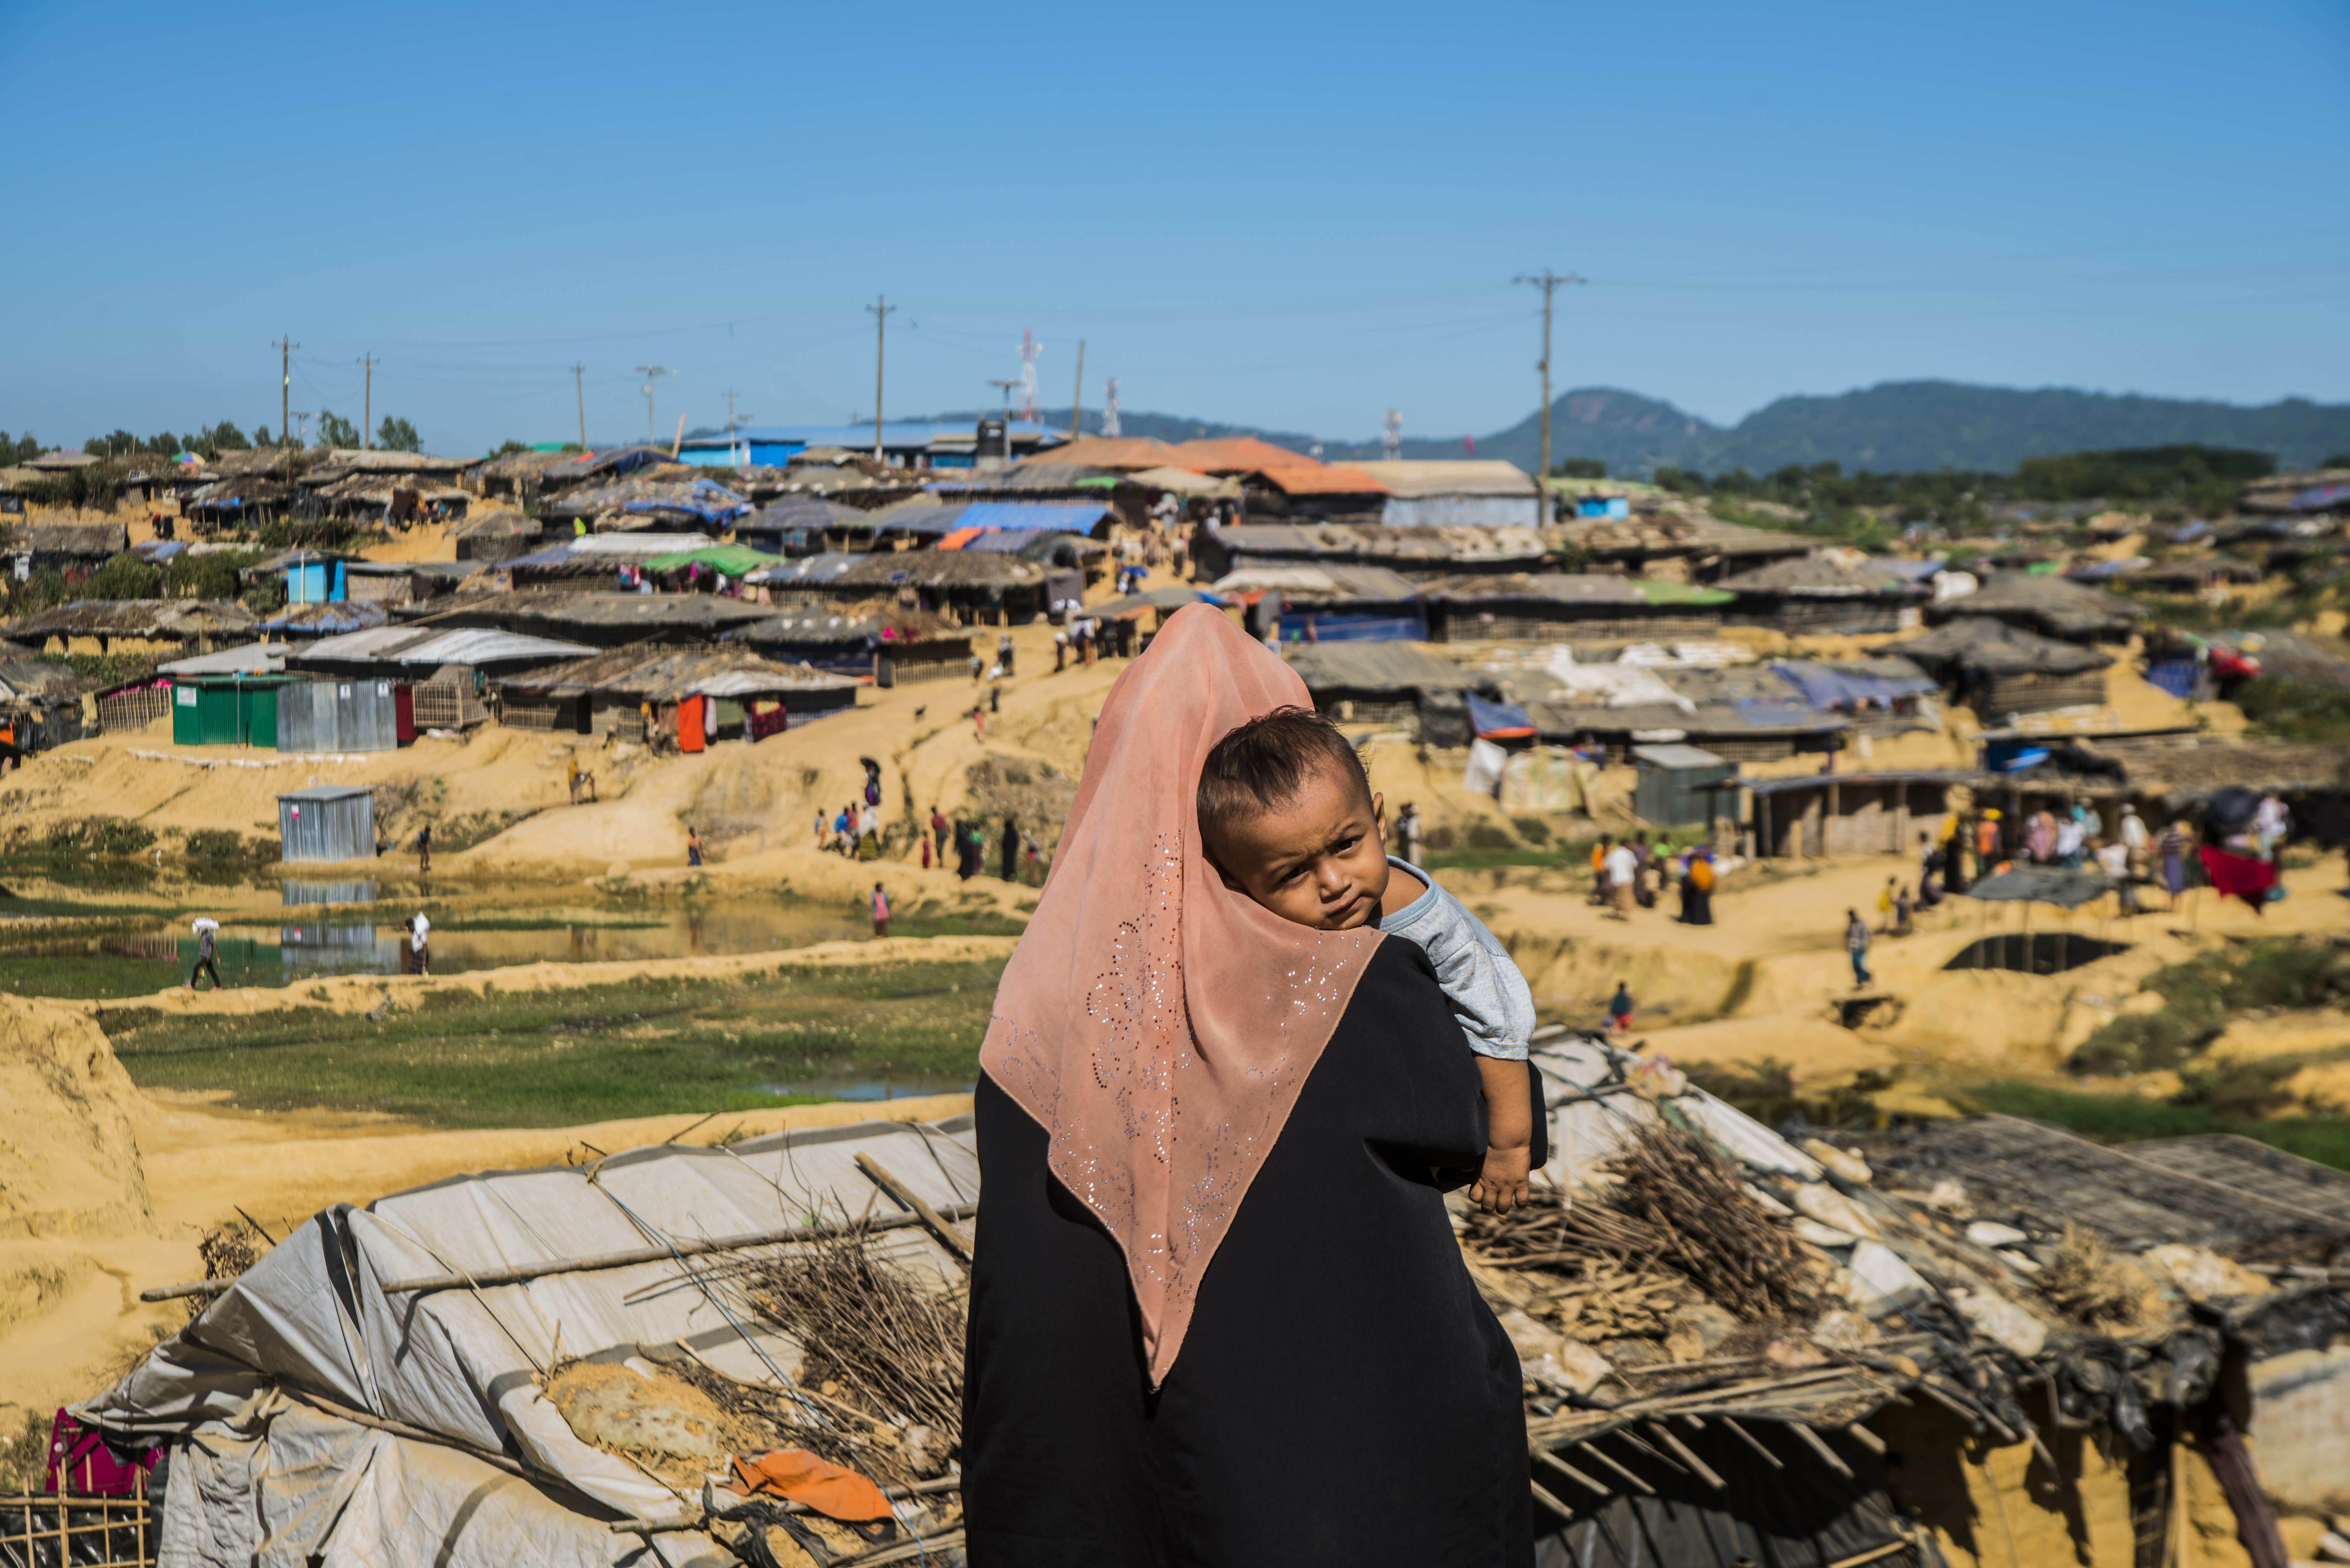 Rohingya people at a refugee camp in Cox's Bazar, Bangladesh on Dec. 3, 2017.